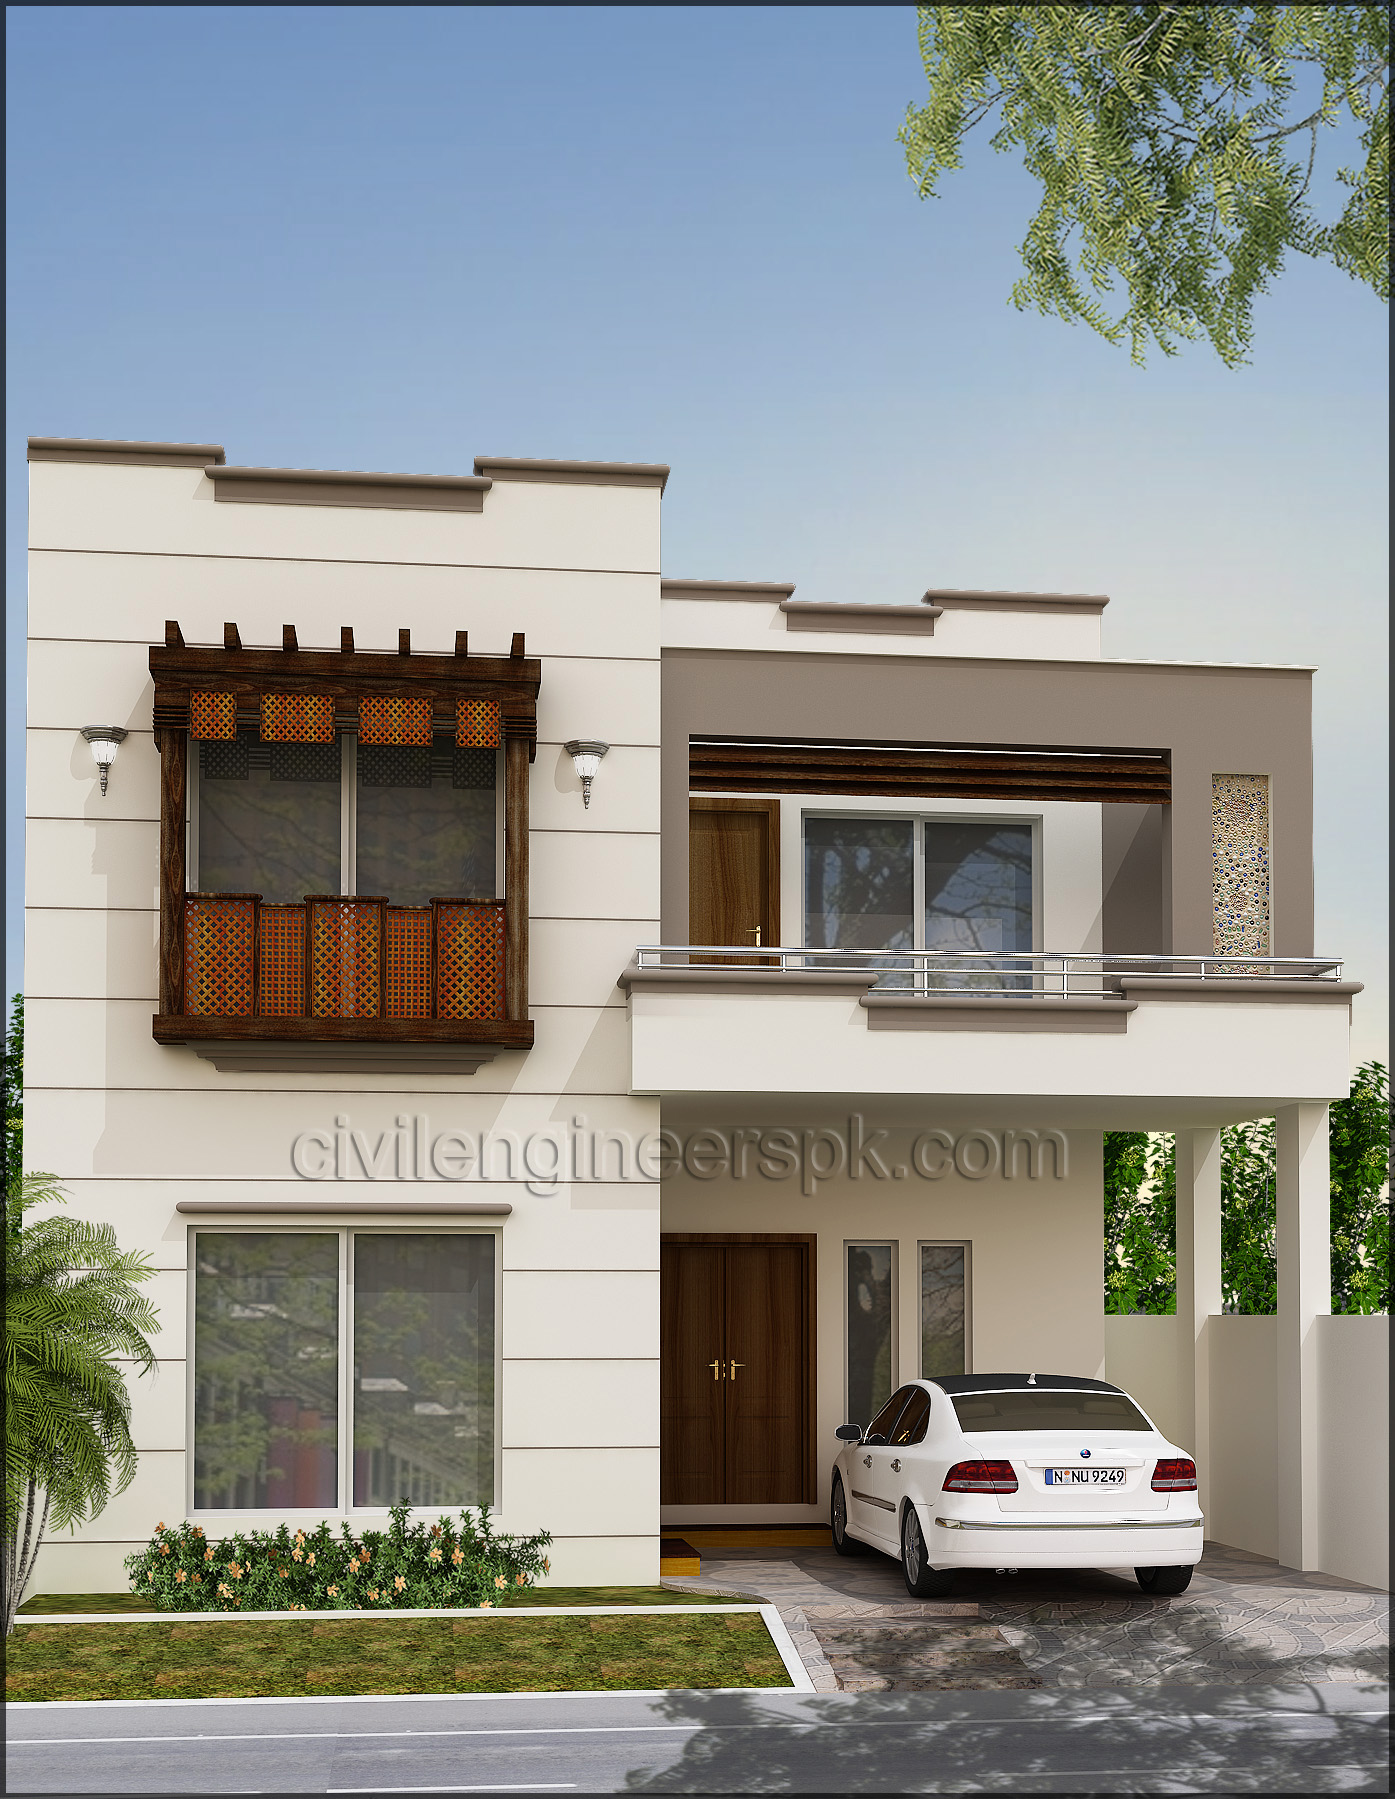 Houses Plans For Sale Front Views Civil Engineers Pk